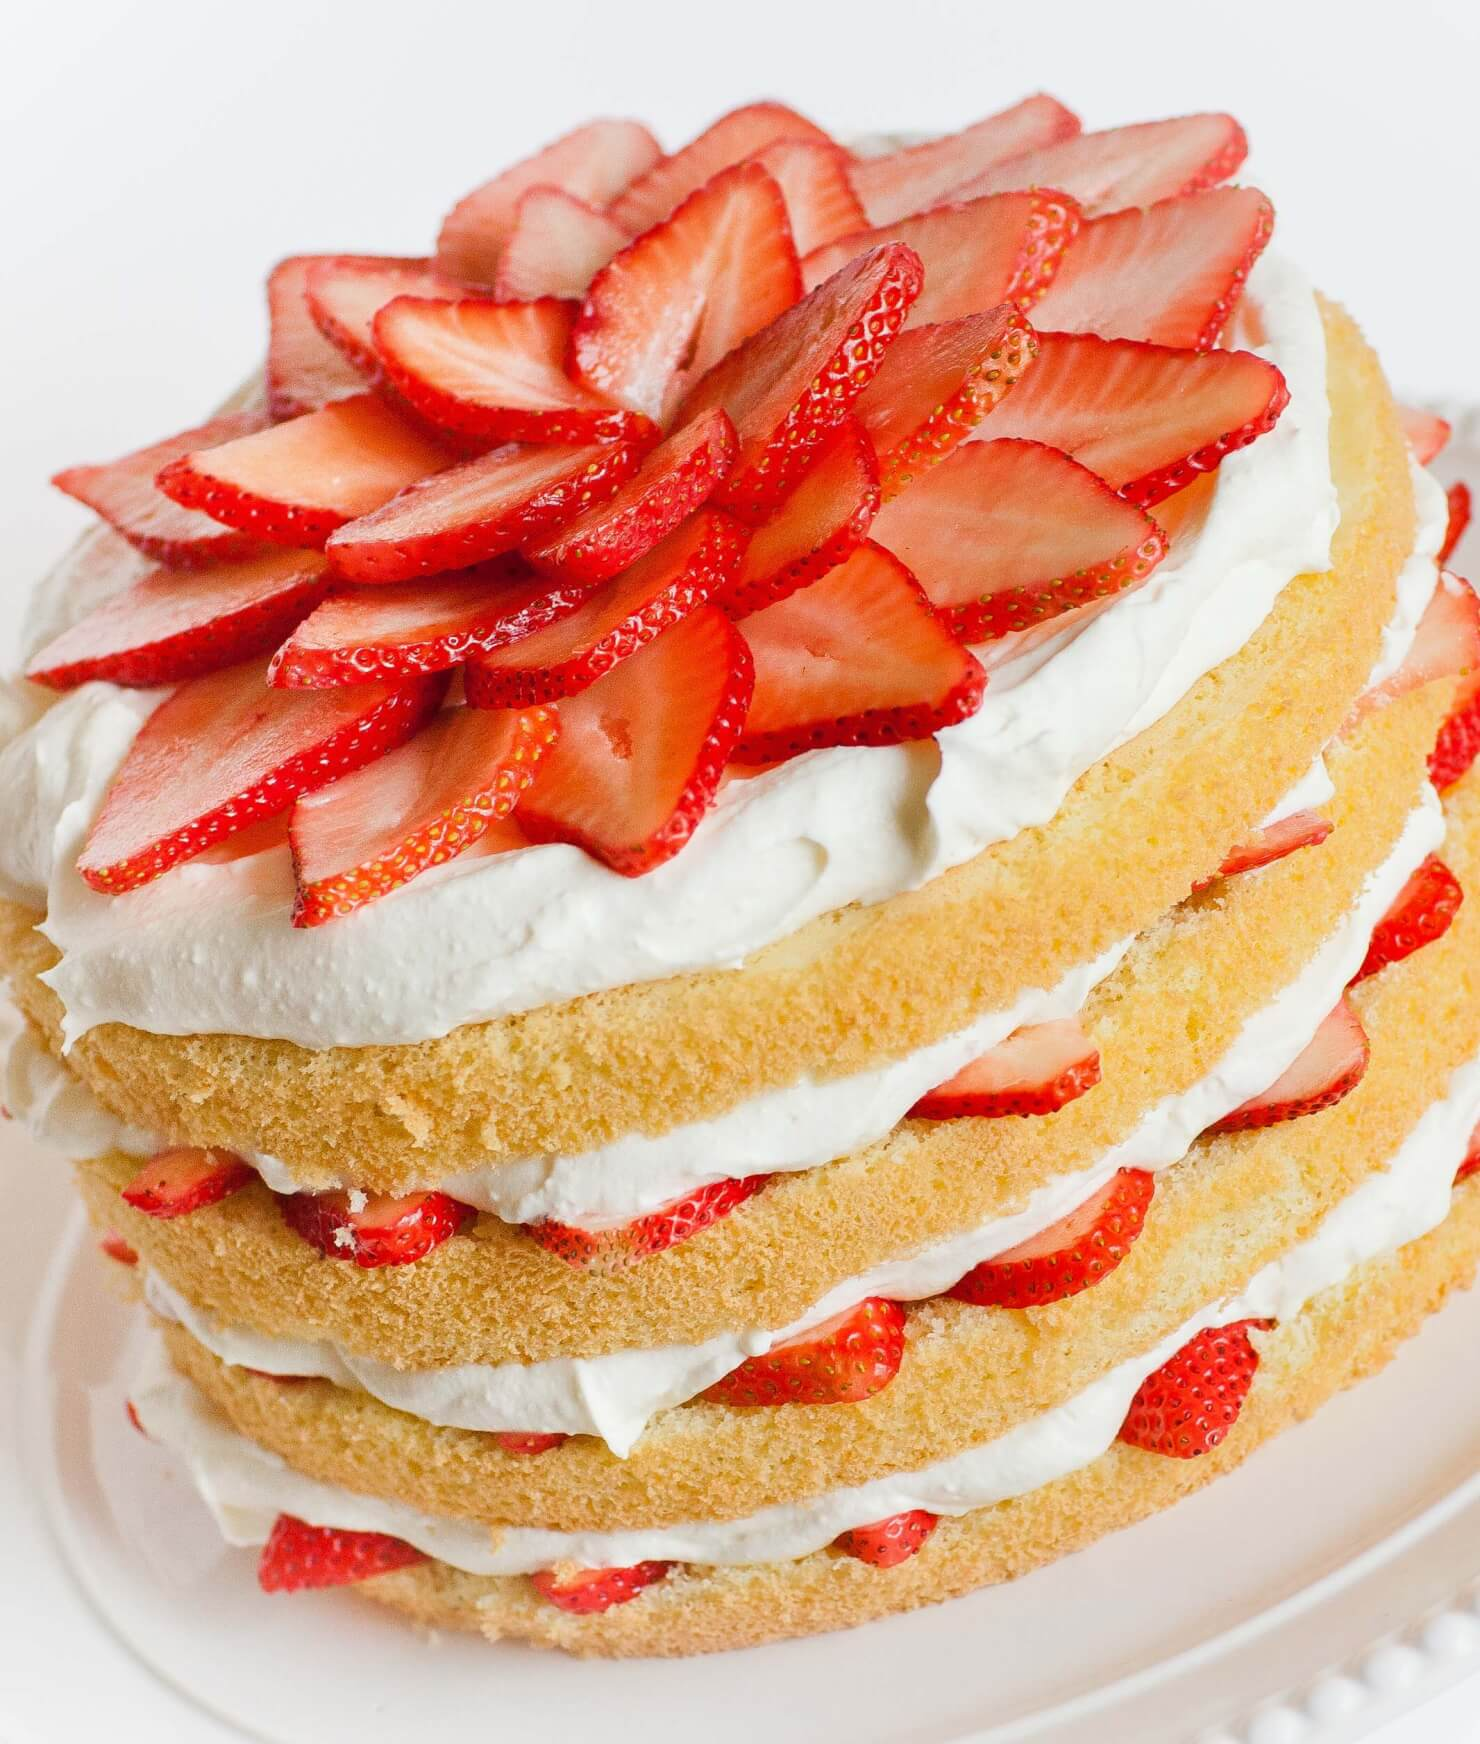 strawberries and cream sponge cake